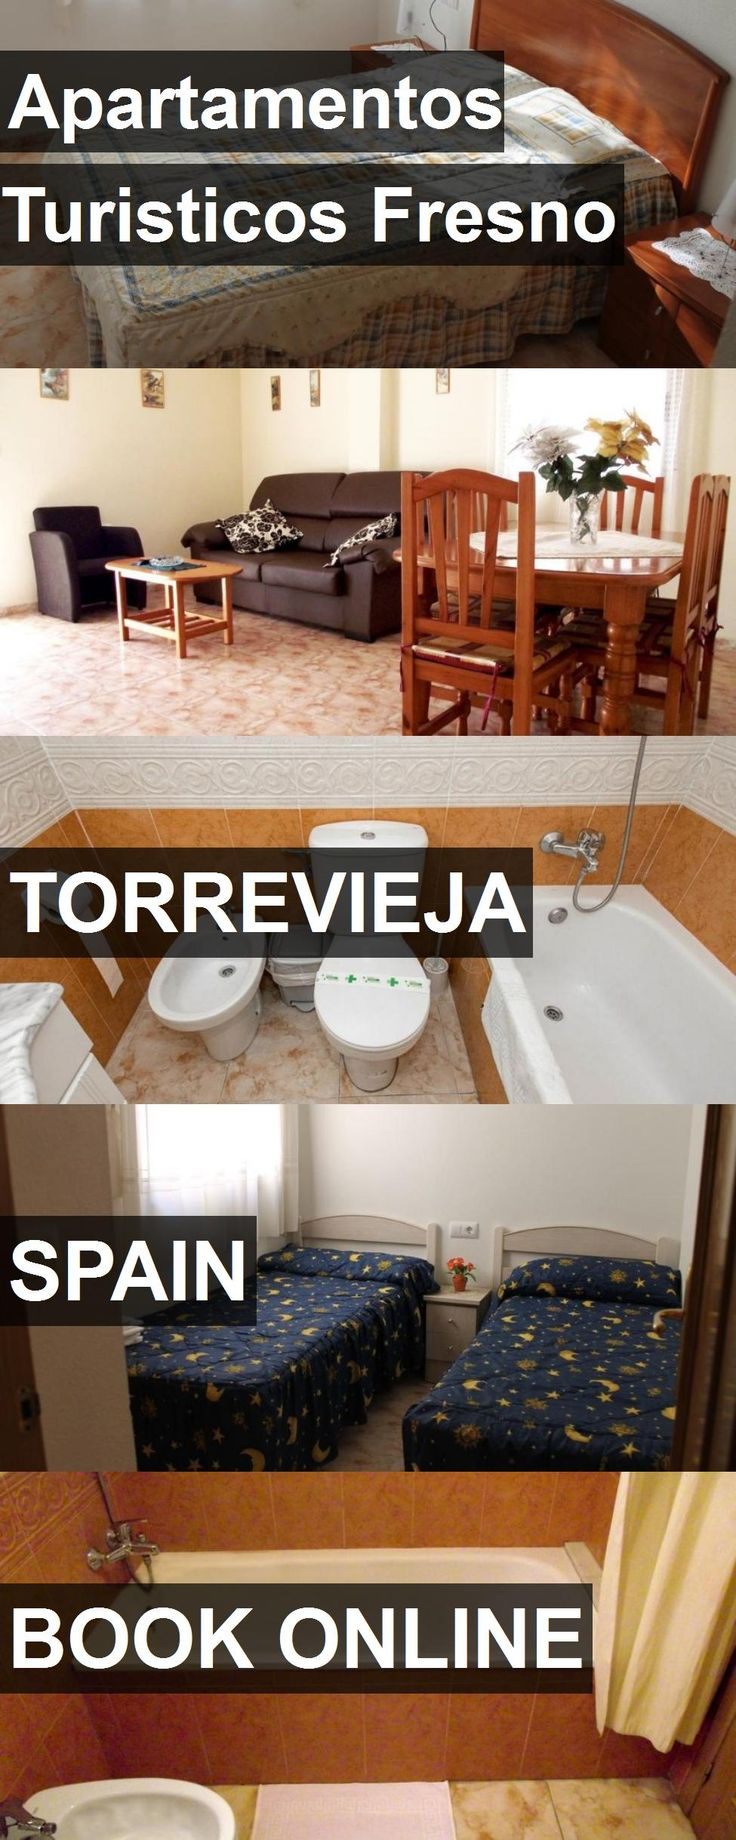 Hotel Apartamentos Turisticos Fresno in Torrevieja, Spain. For more information, photos, reviews and best prices please follow the link. #Spain #Torrevieja #ApartamentosTuristicosFresno #hotel #travel #vacation